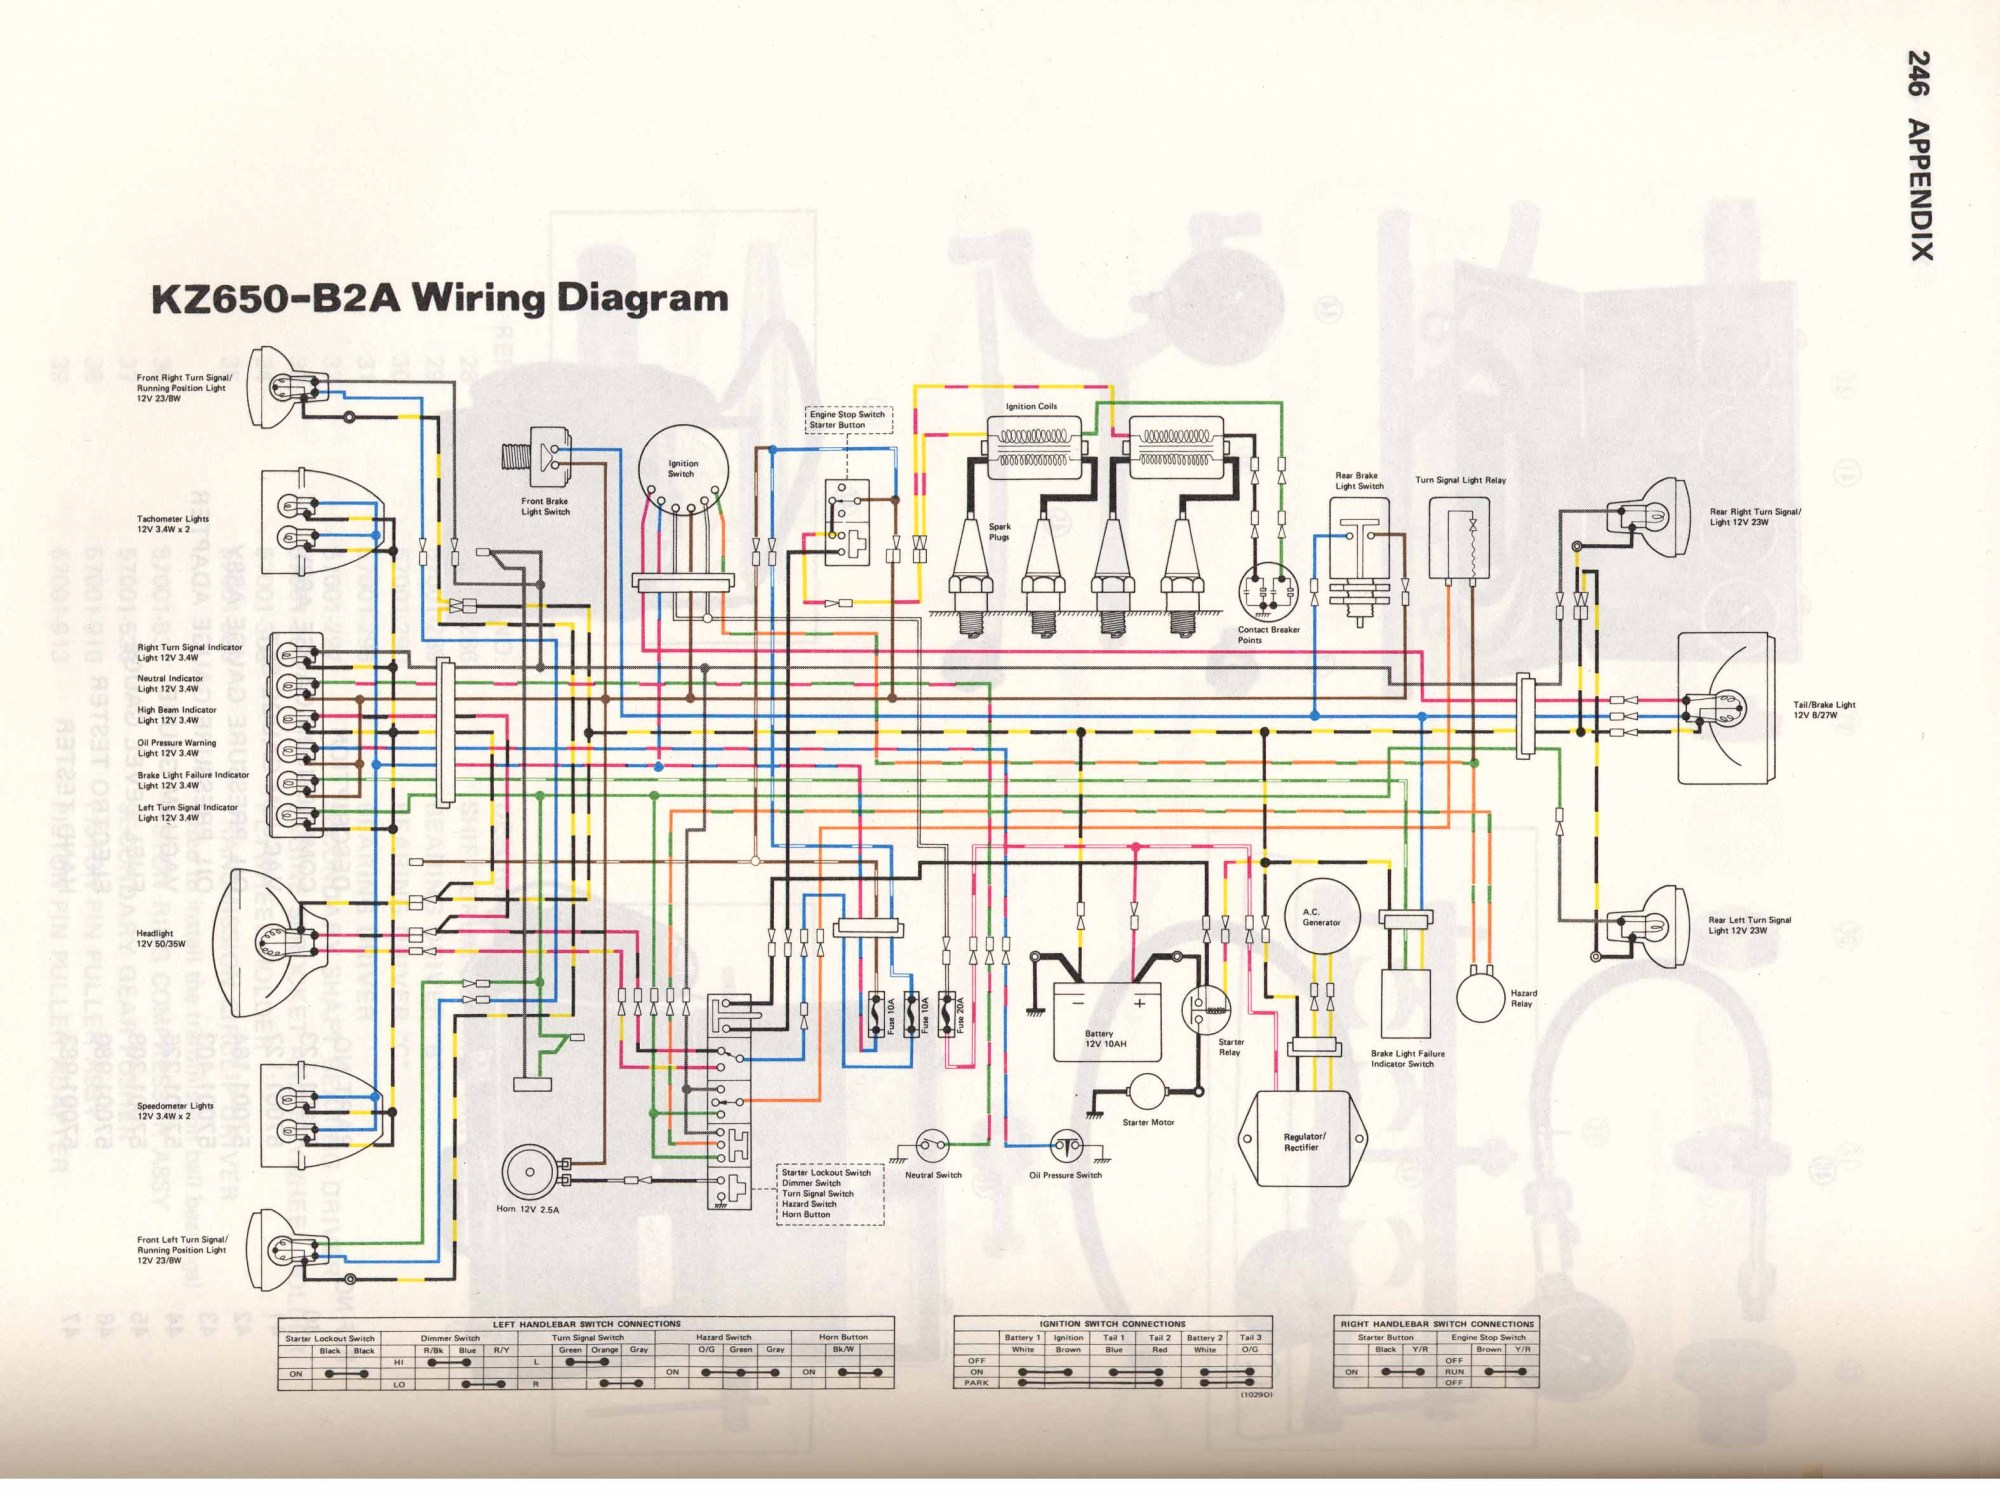 hight resolution of info wiring diagrams kz650 b2a